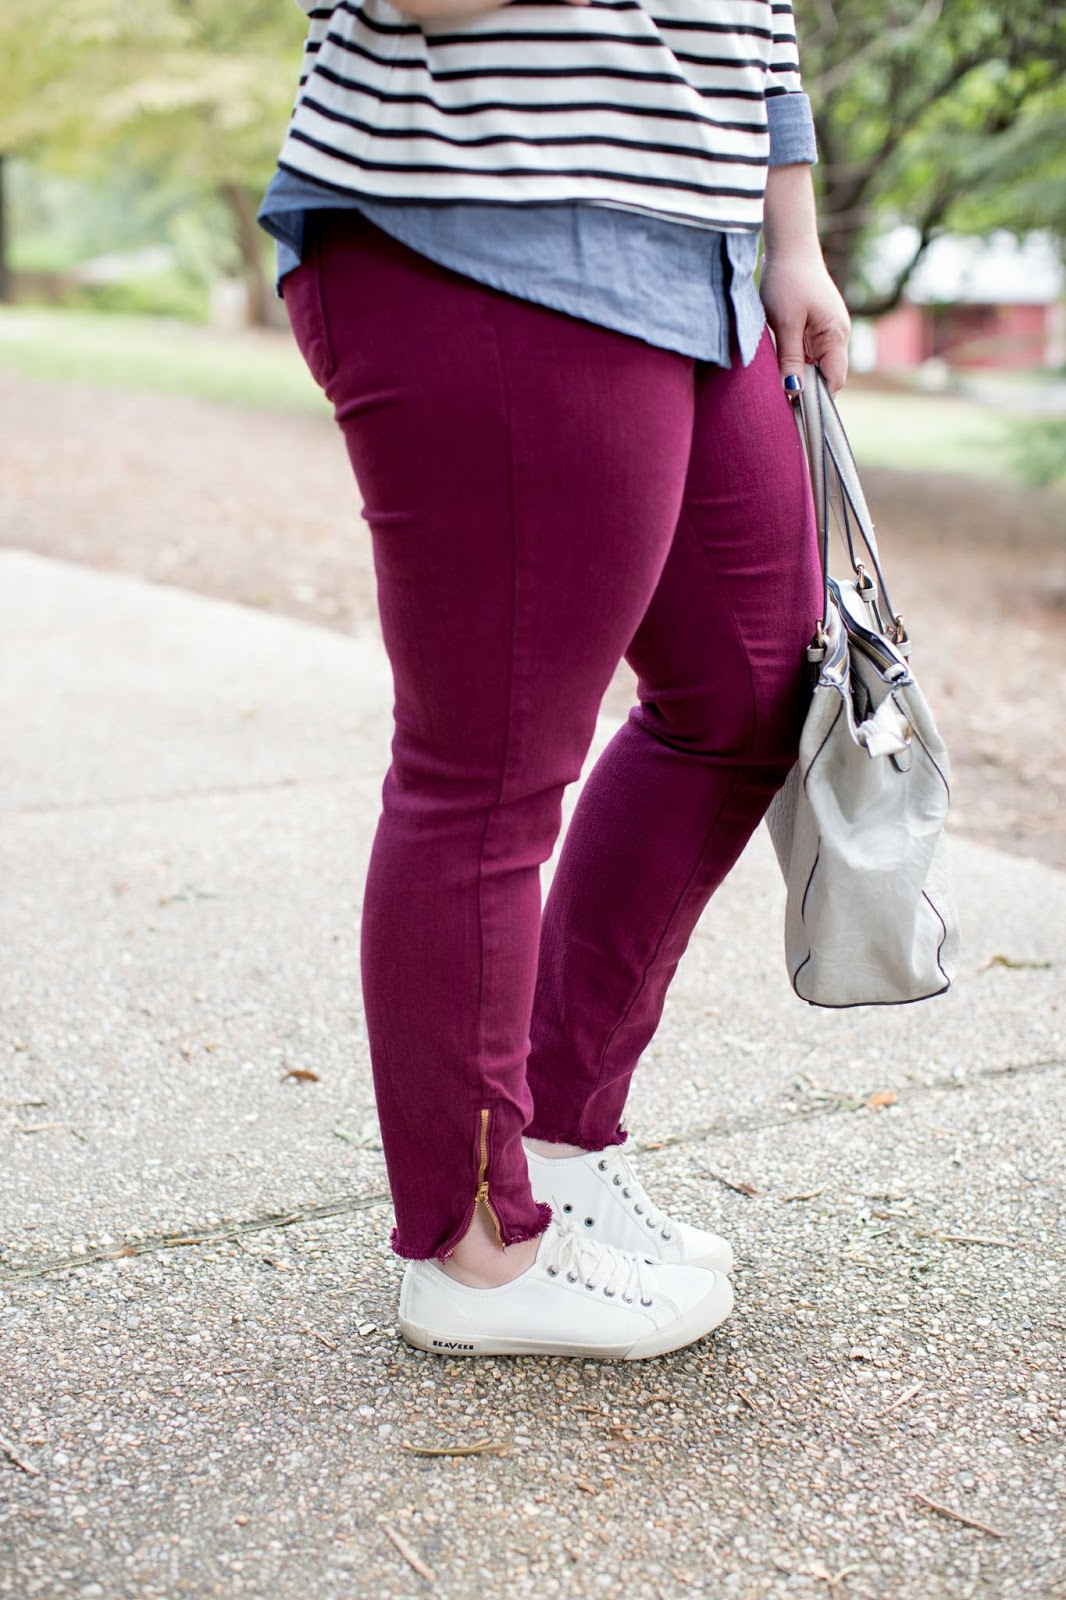 Rebecca Lately Fall Outfit Stripes Chambray Maroon Jeans